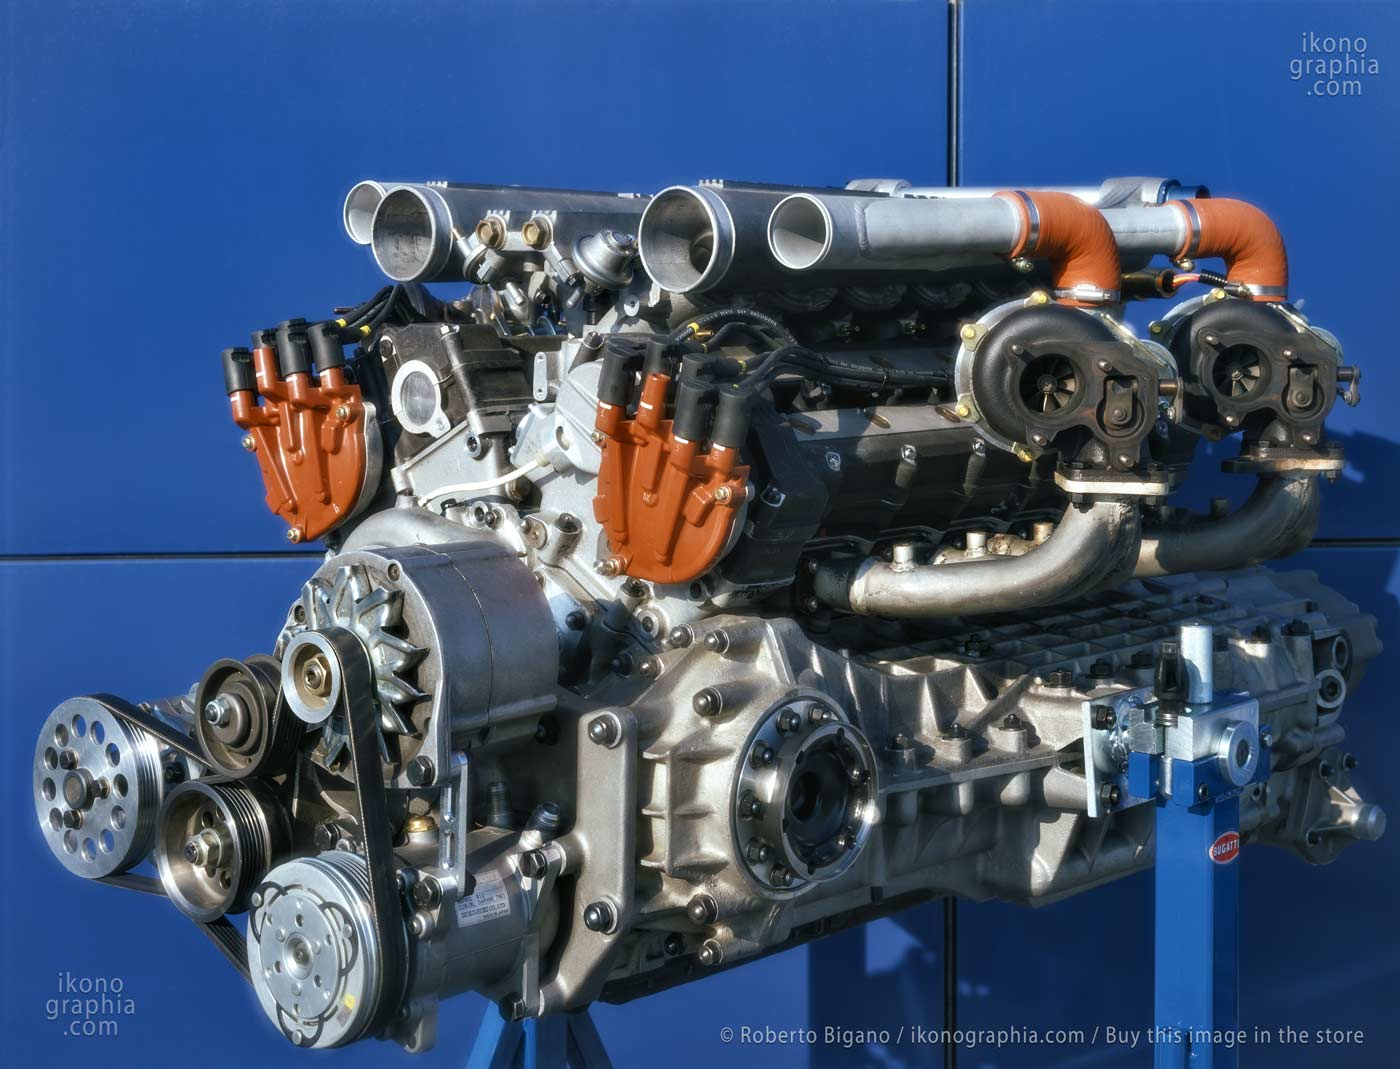 The Bugatti EB110 engine. A 3.5 L Bugatti quad-turbocharged V12. With five valves per cylinder, the 12-cylinder aluminum and magnesium engine block was designed in a single piece containing the six-speed transmission and two differentials: a marvel that surprised all the major car engineering departments, manufacturers. Photo by Roberto Bigano. Buy this image in the ikonographia.com store.